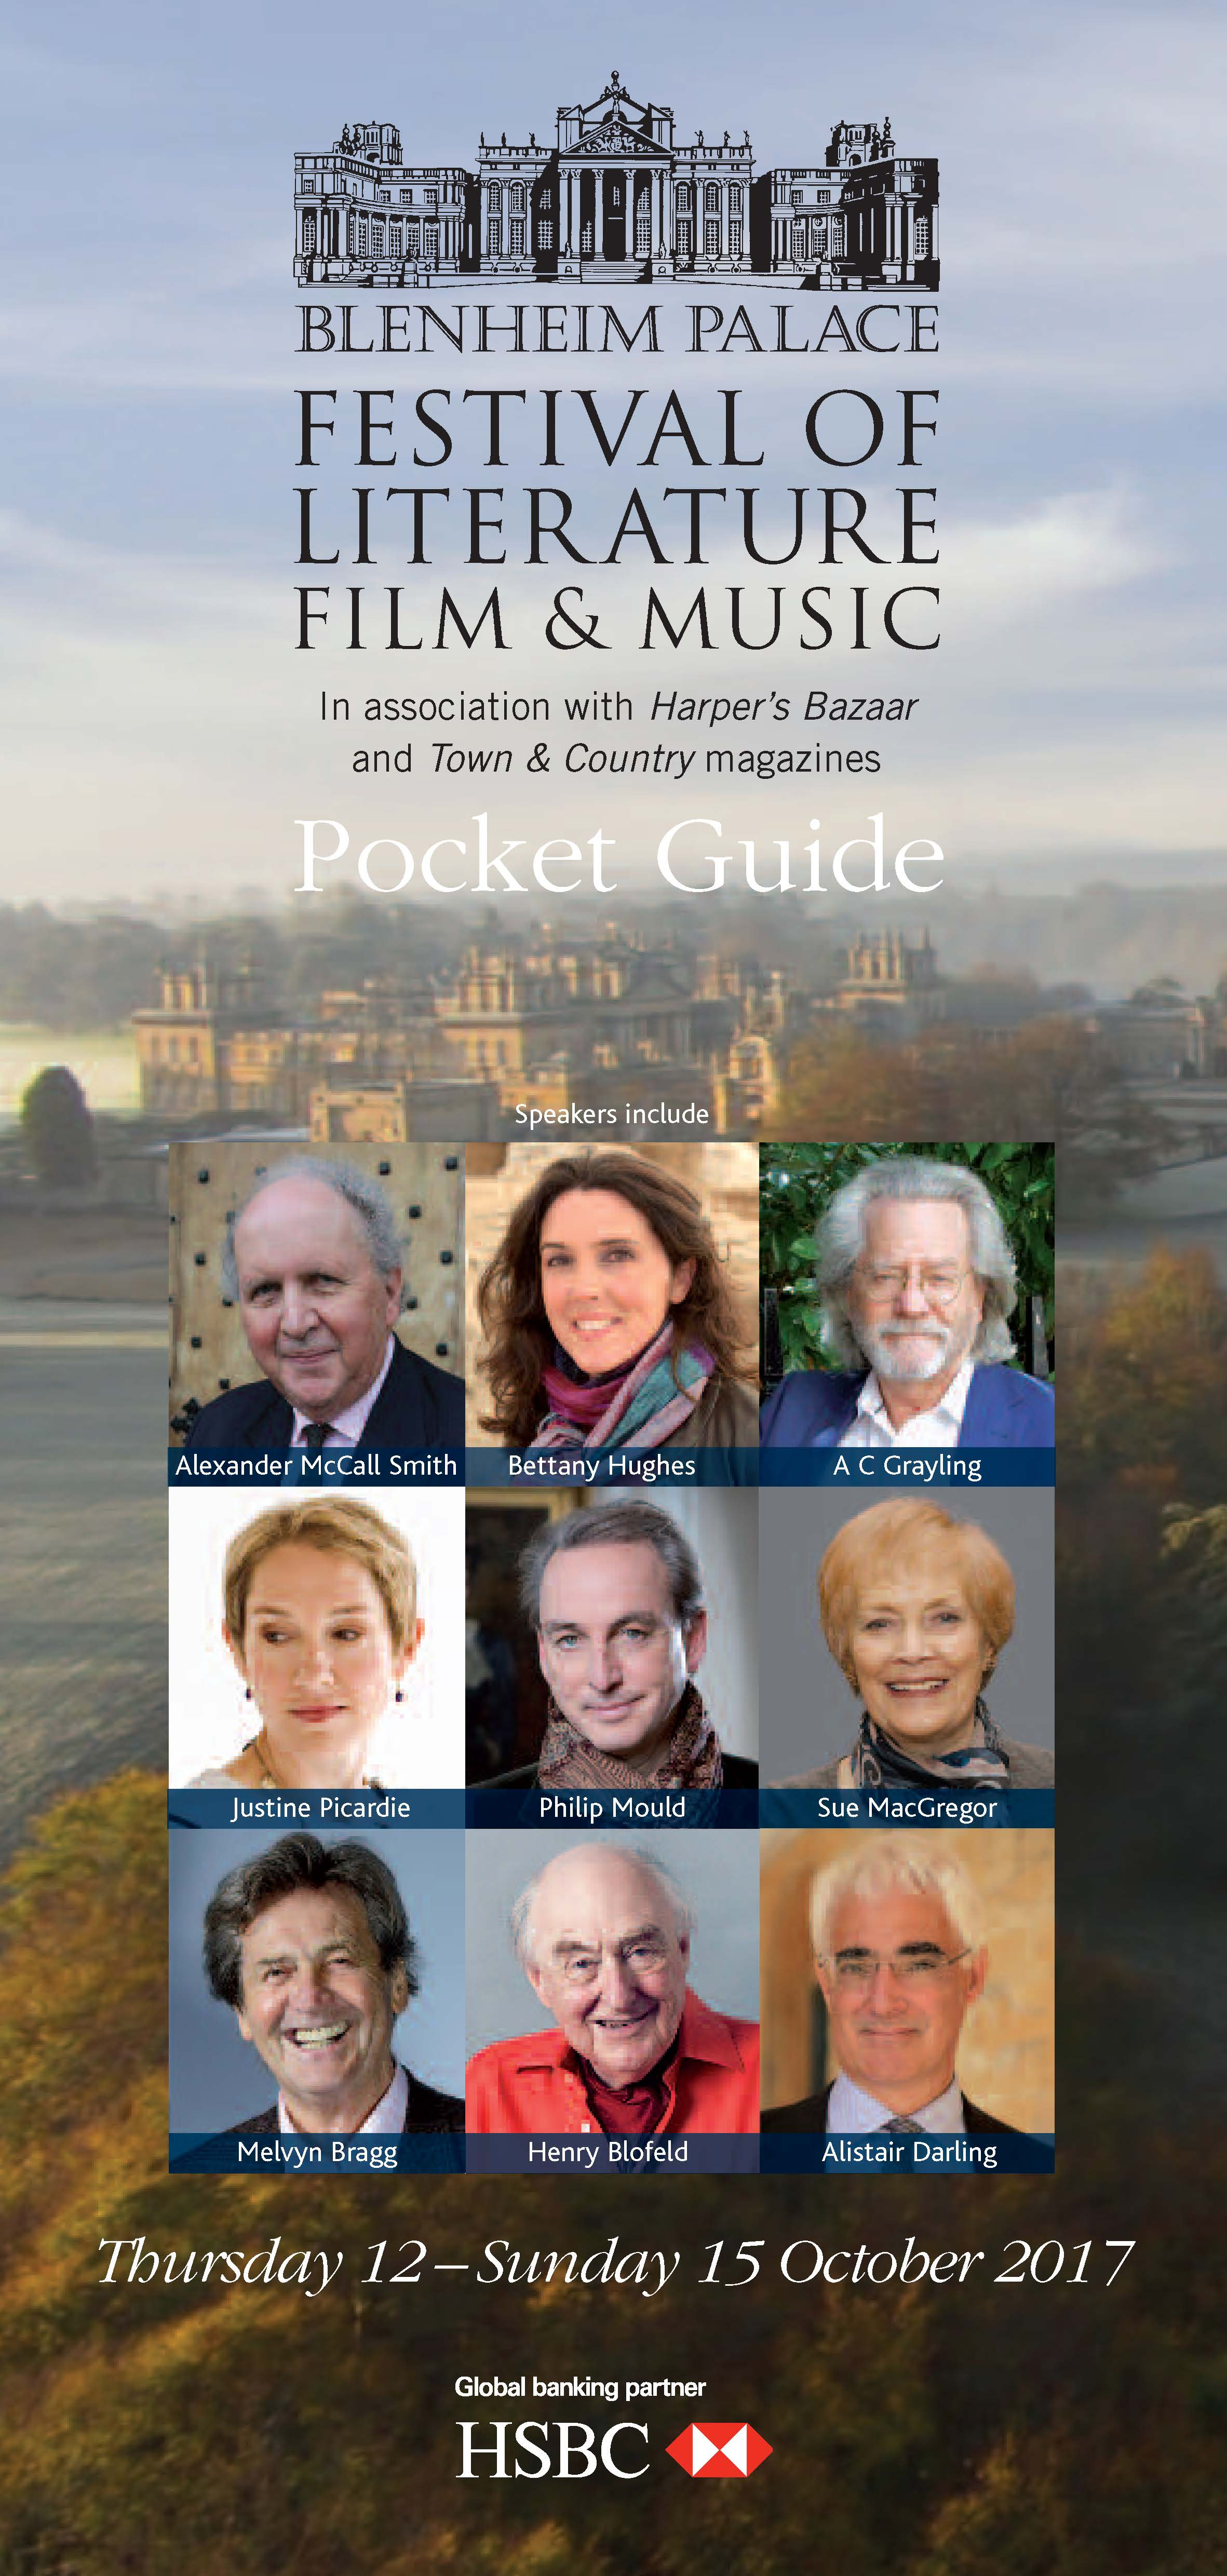 Blenheim Palace festival of Literature, Film and Music 2017 pocket guide